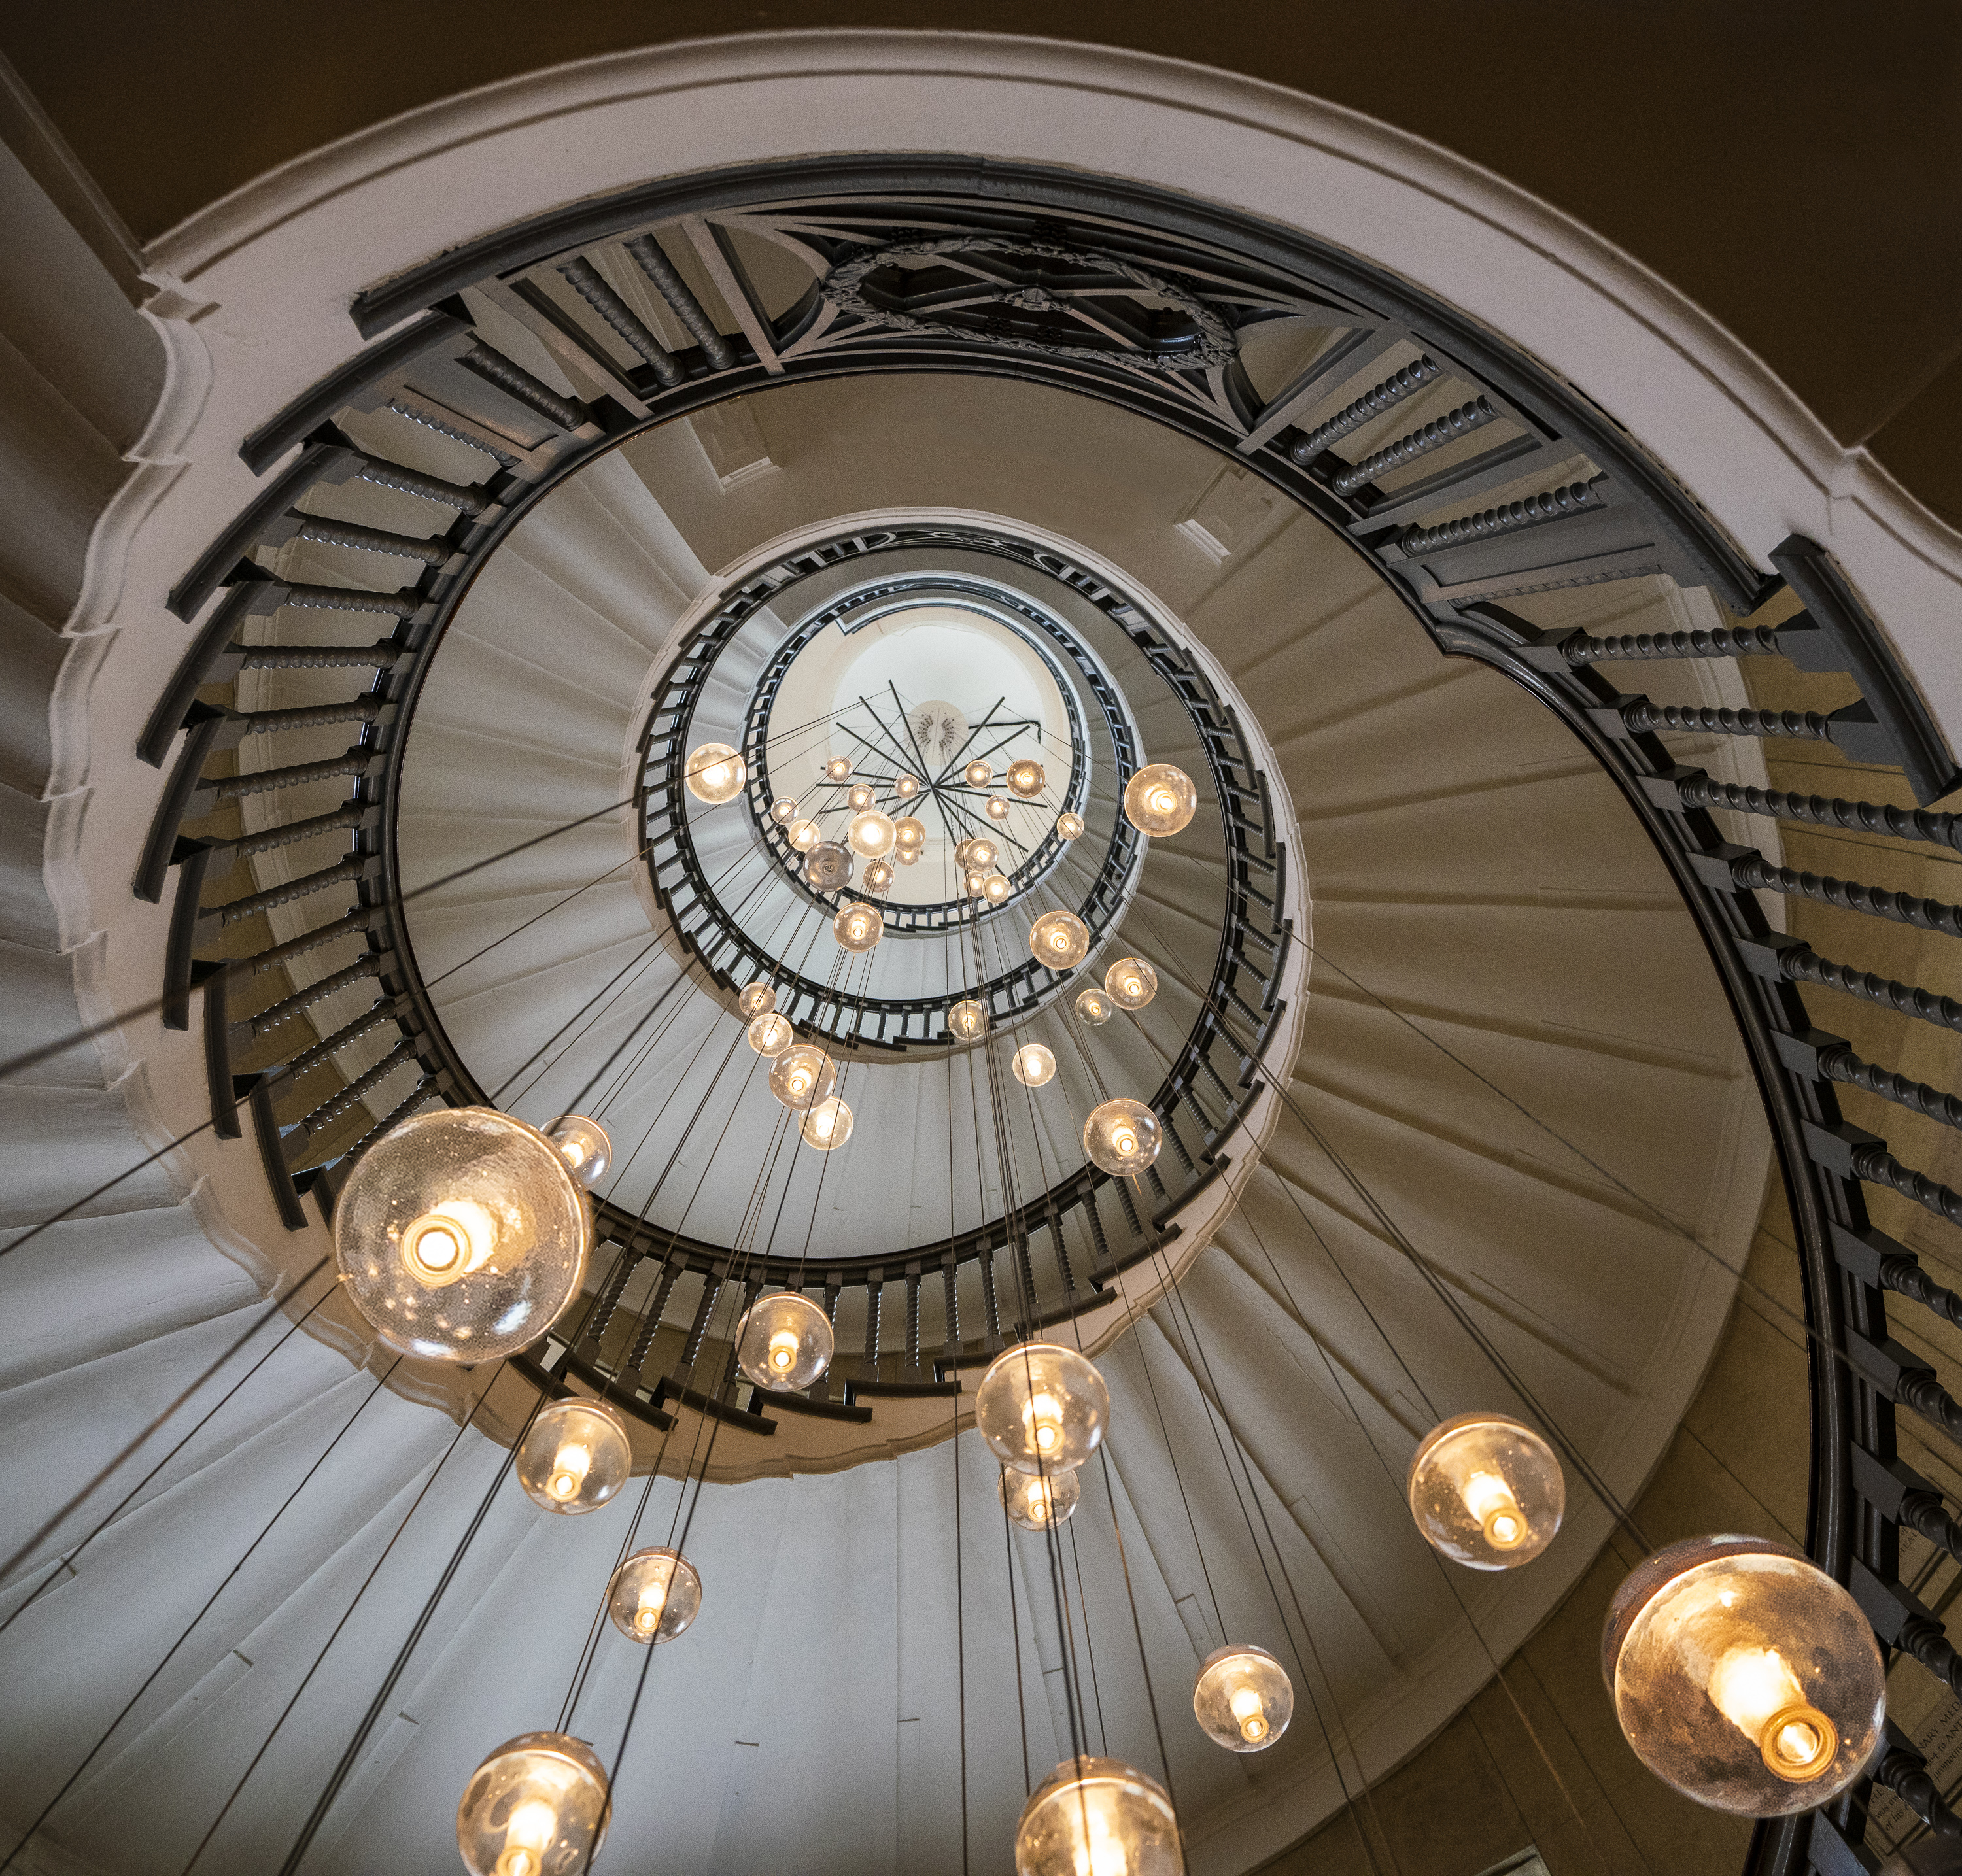 Spiral Staircase in Heal's